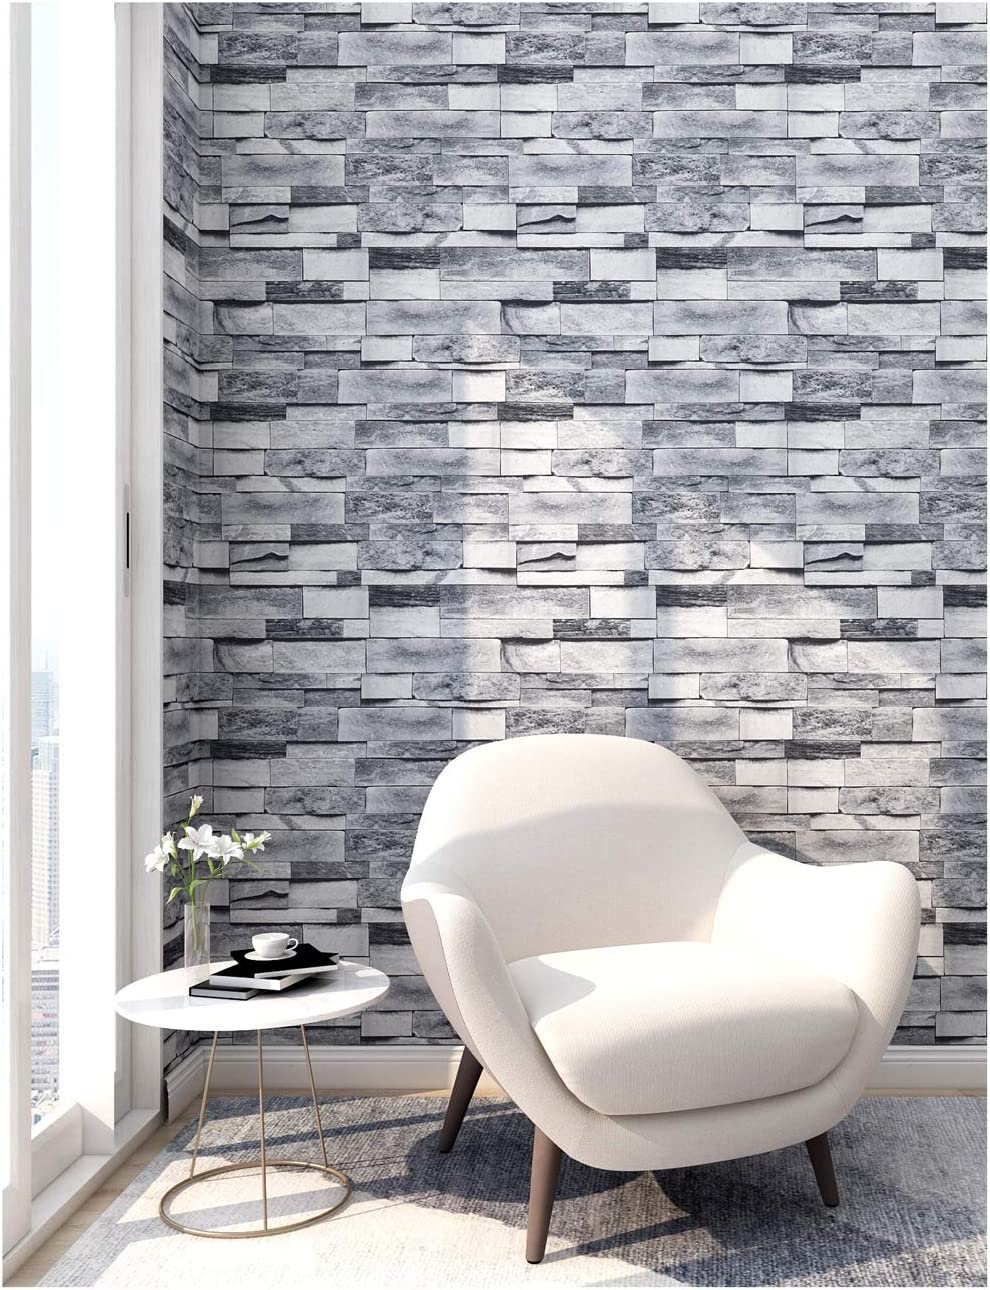 HaokHome 91064-1 Peel and Stick Faux Brick Stone Wallpaper 17.7in x 9.8ft Gray Vinyl Self Adhesive Decorative